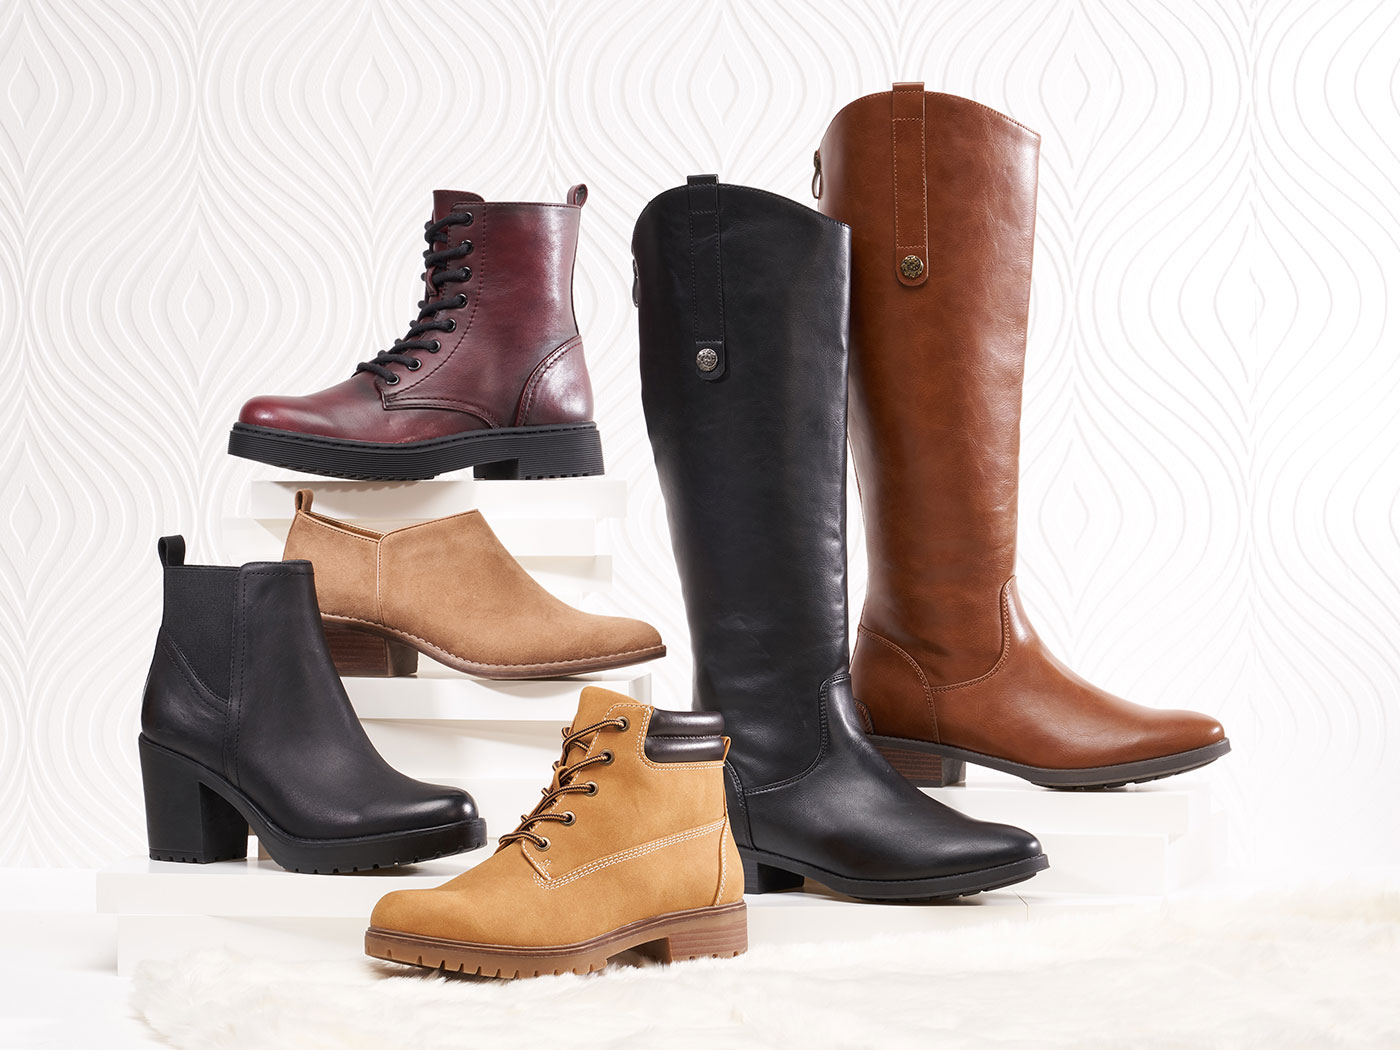 assorted trendy womens boots